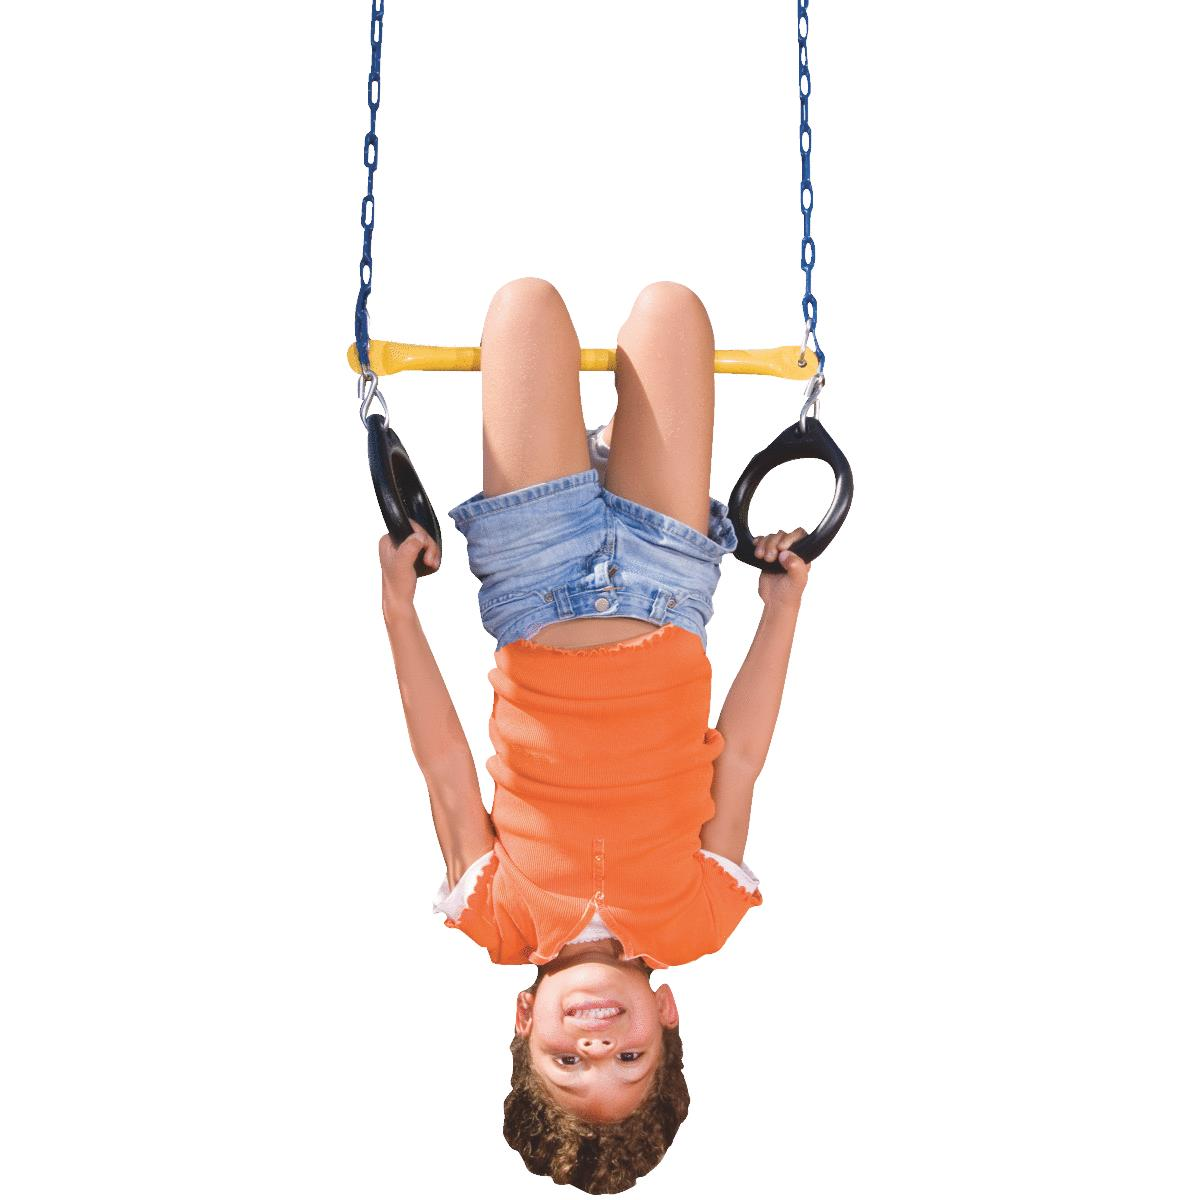 Swing N Slide Ring & Trapeze Combination